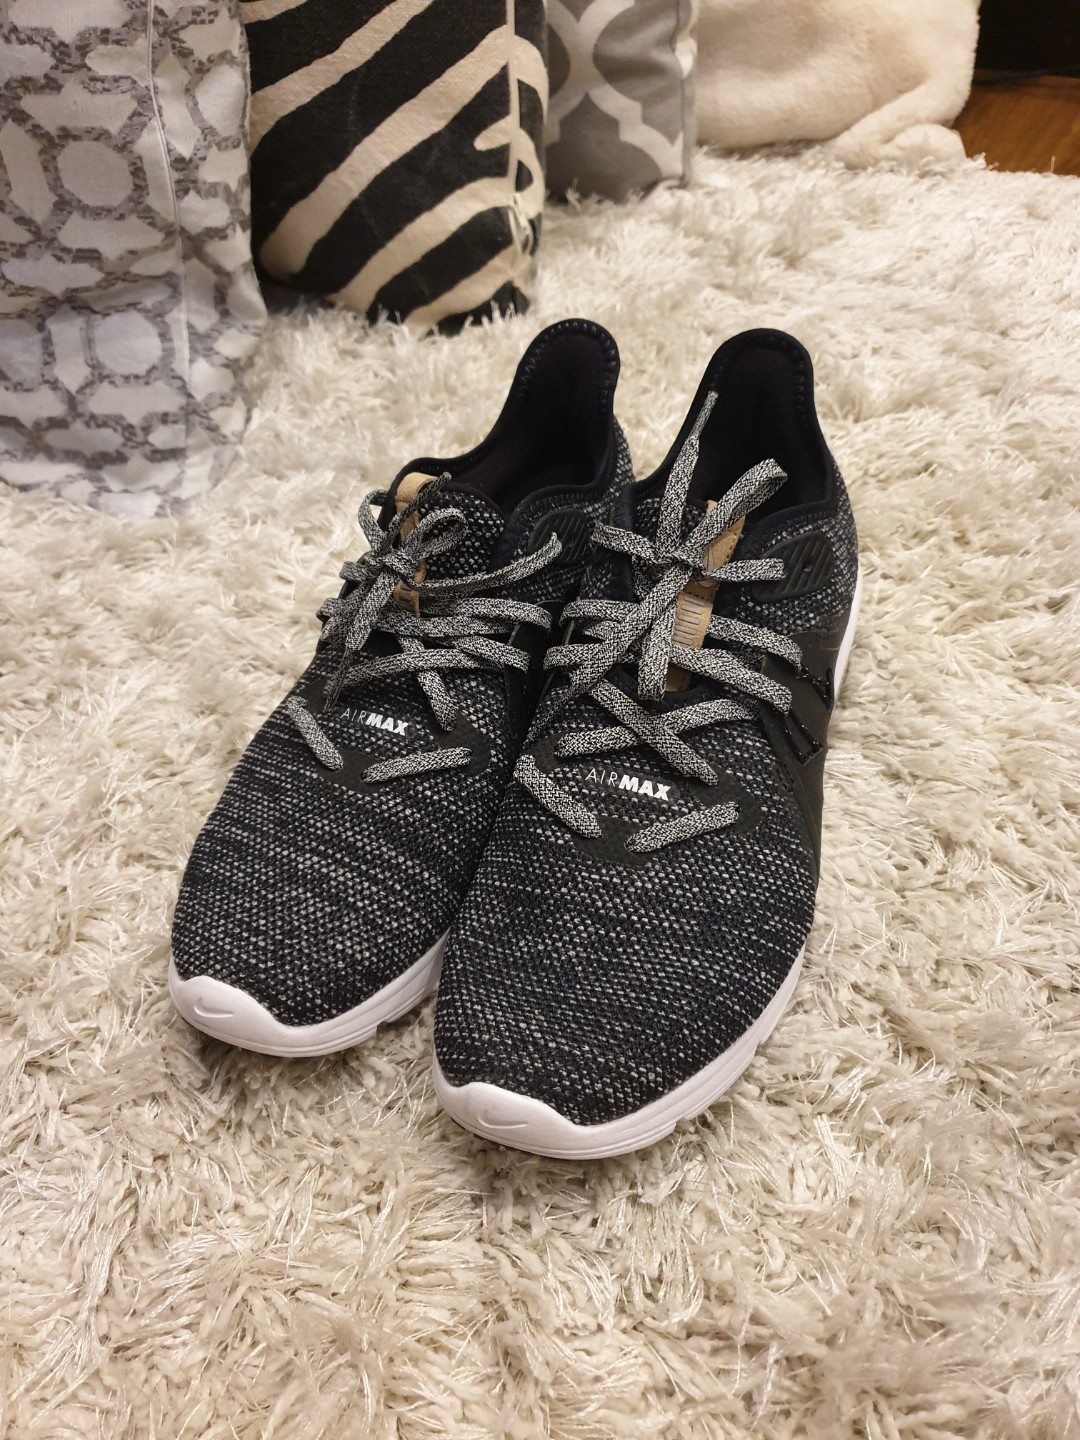 new arrival d61c0 3dd49 Nike Air Max Sequent 3, Women s Fashion, Shoes on Carousell